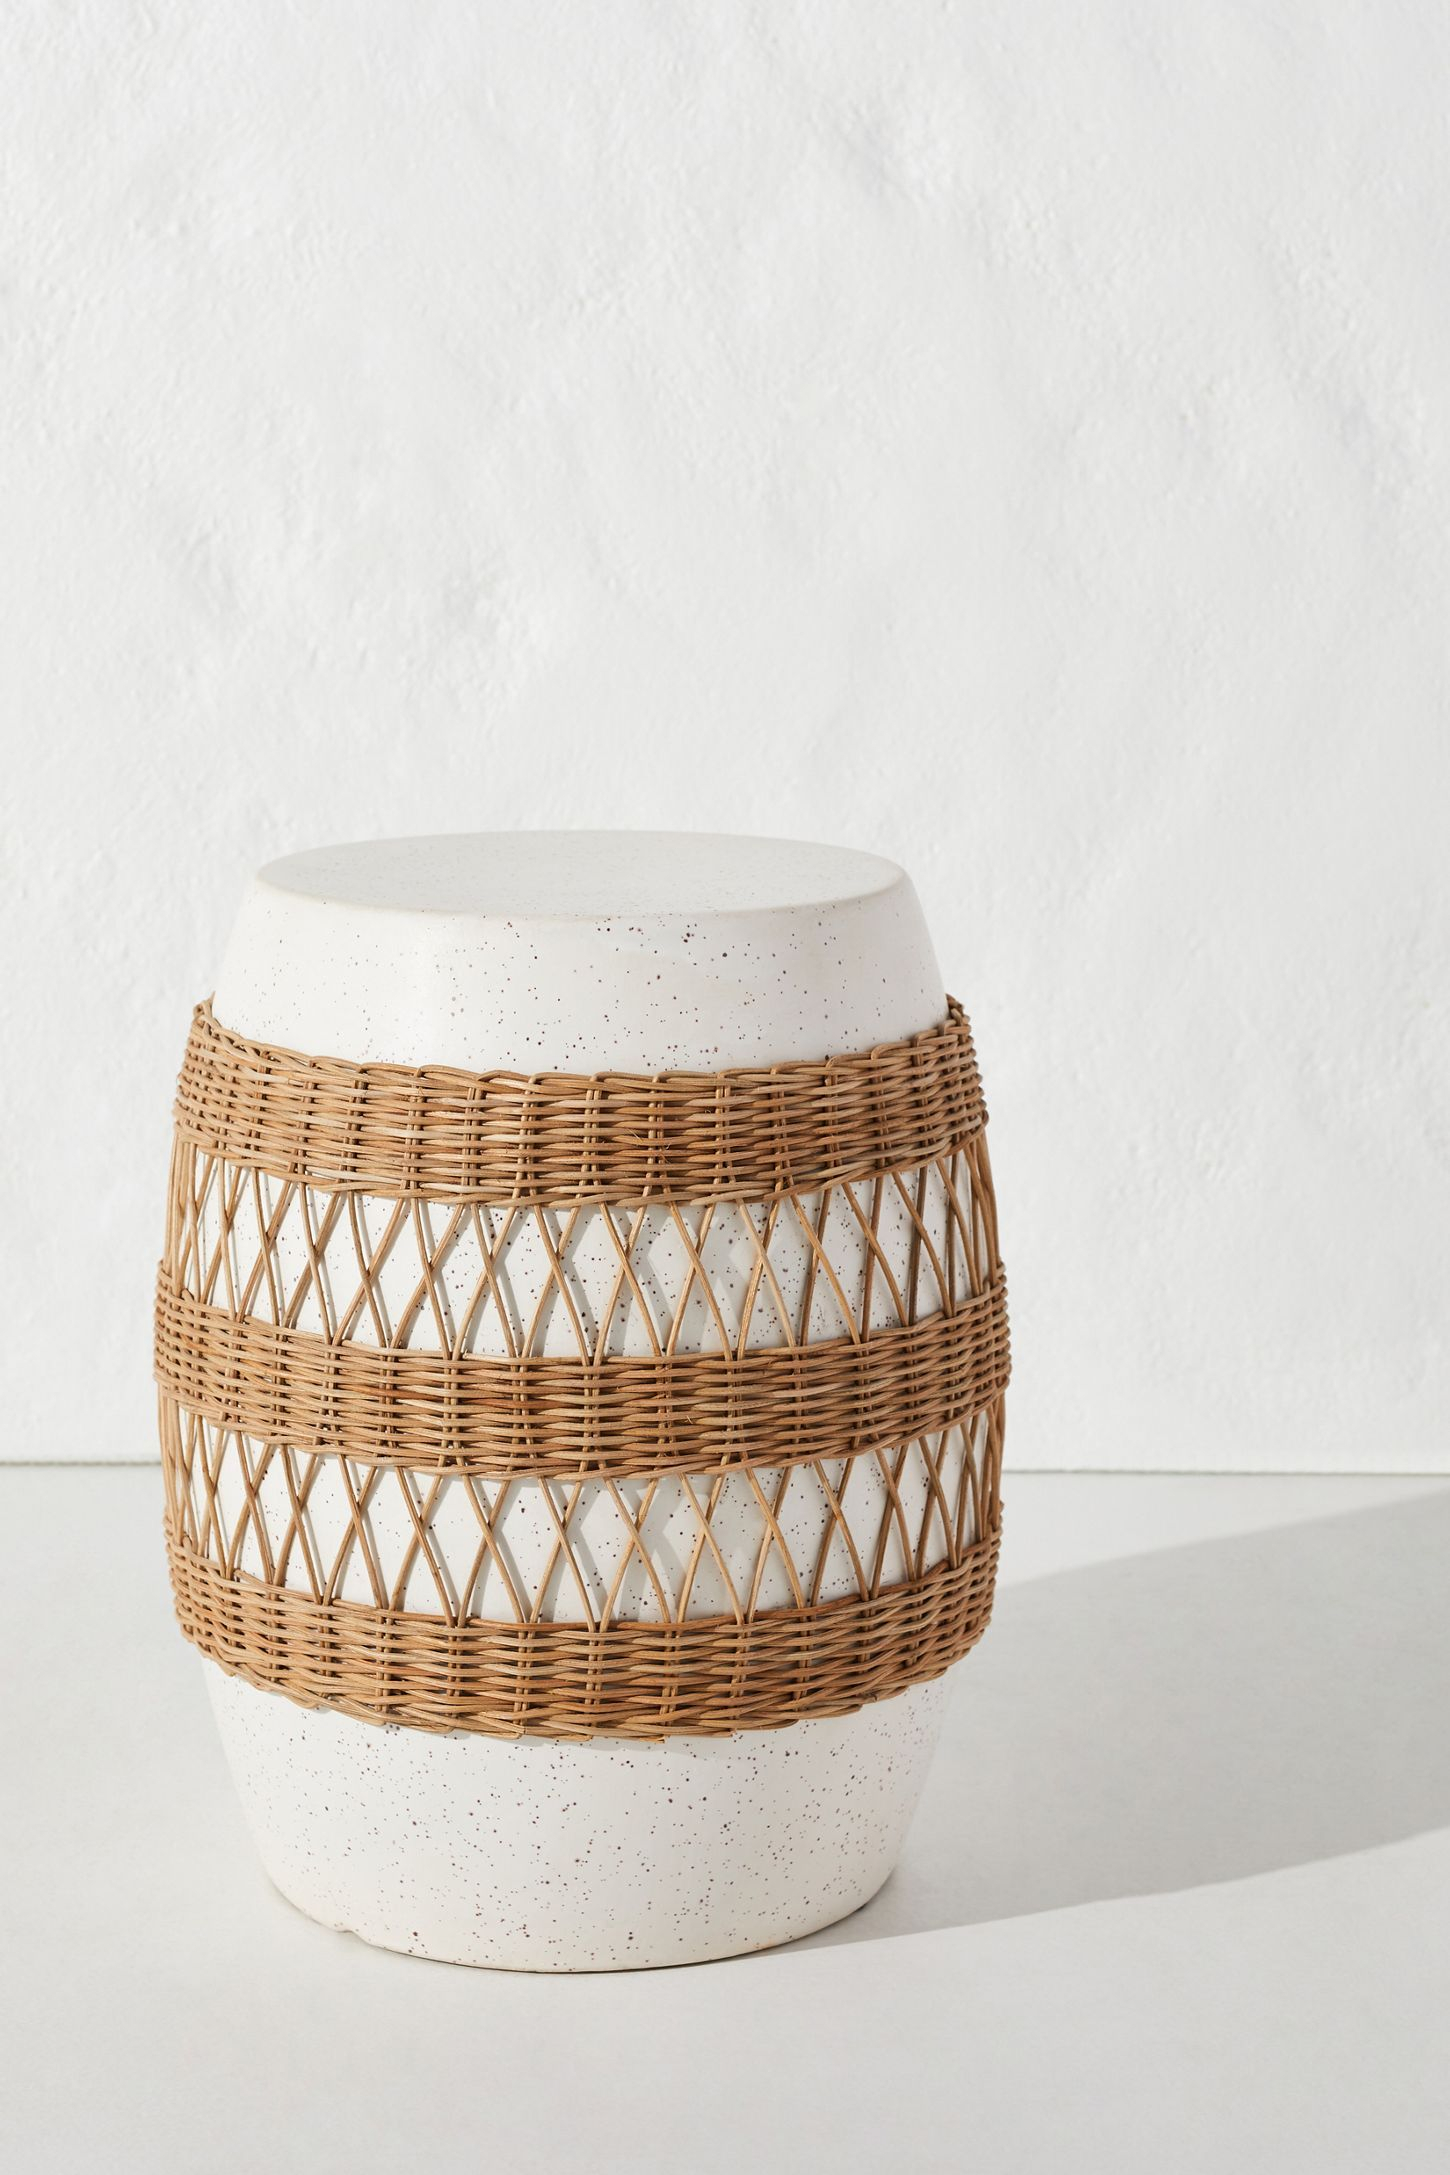 Maggie Rattan Wrapped Stool | Ceramic Stool, Rattan Rocking With Regard To Svendsen Ceramic Garden Stools (View 17 of 25)